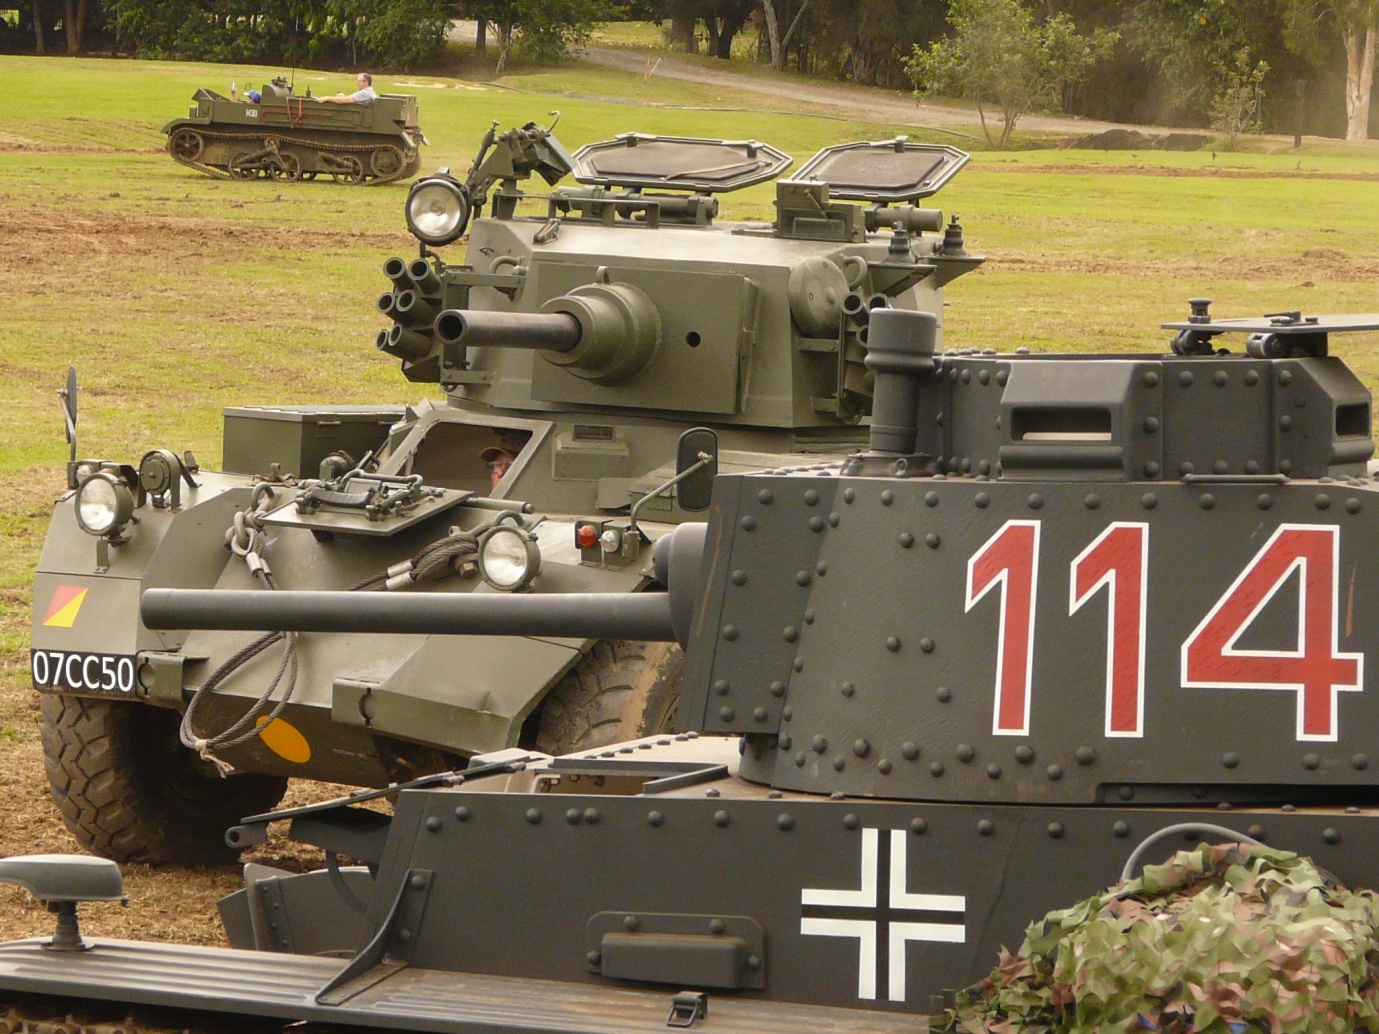 All manner of armoured vehicles were available for rides around the dirt track.